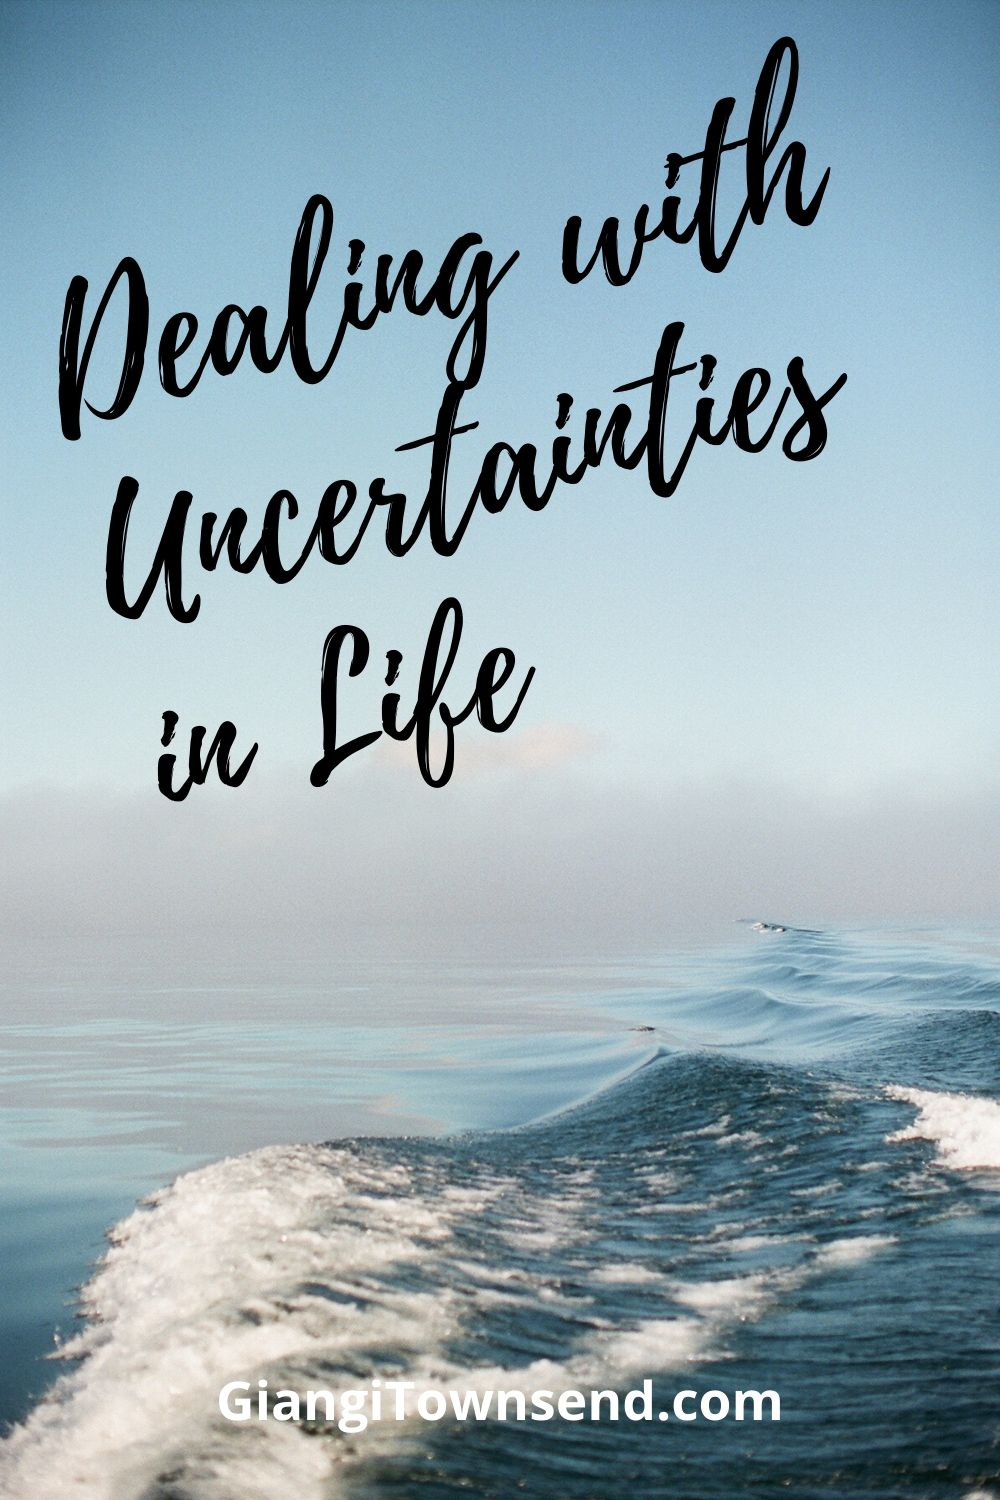 dealing with uncertainties in life